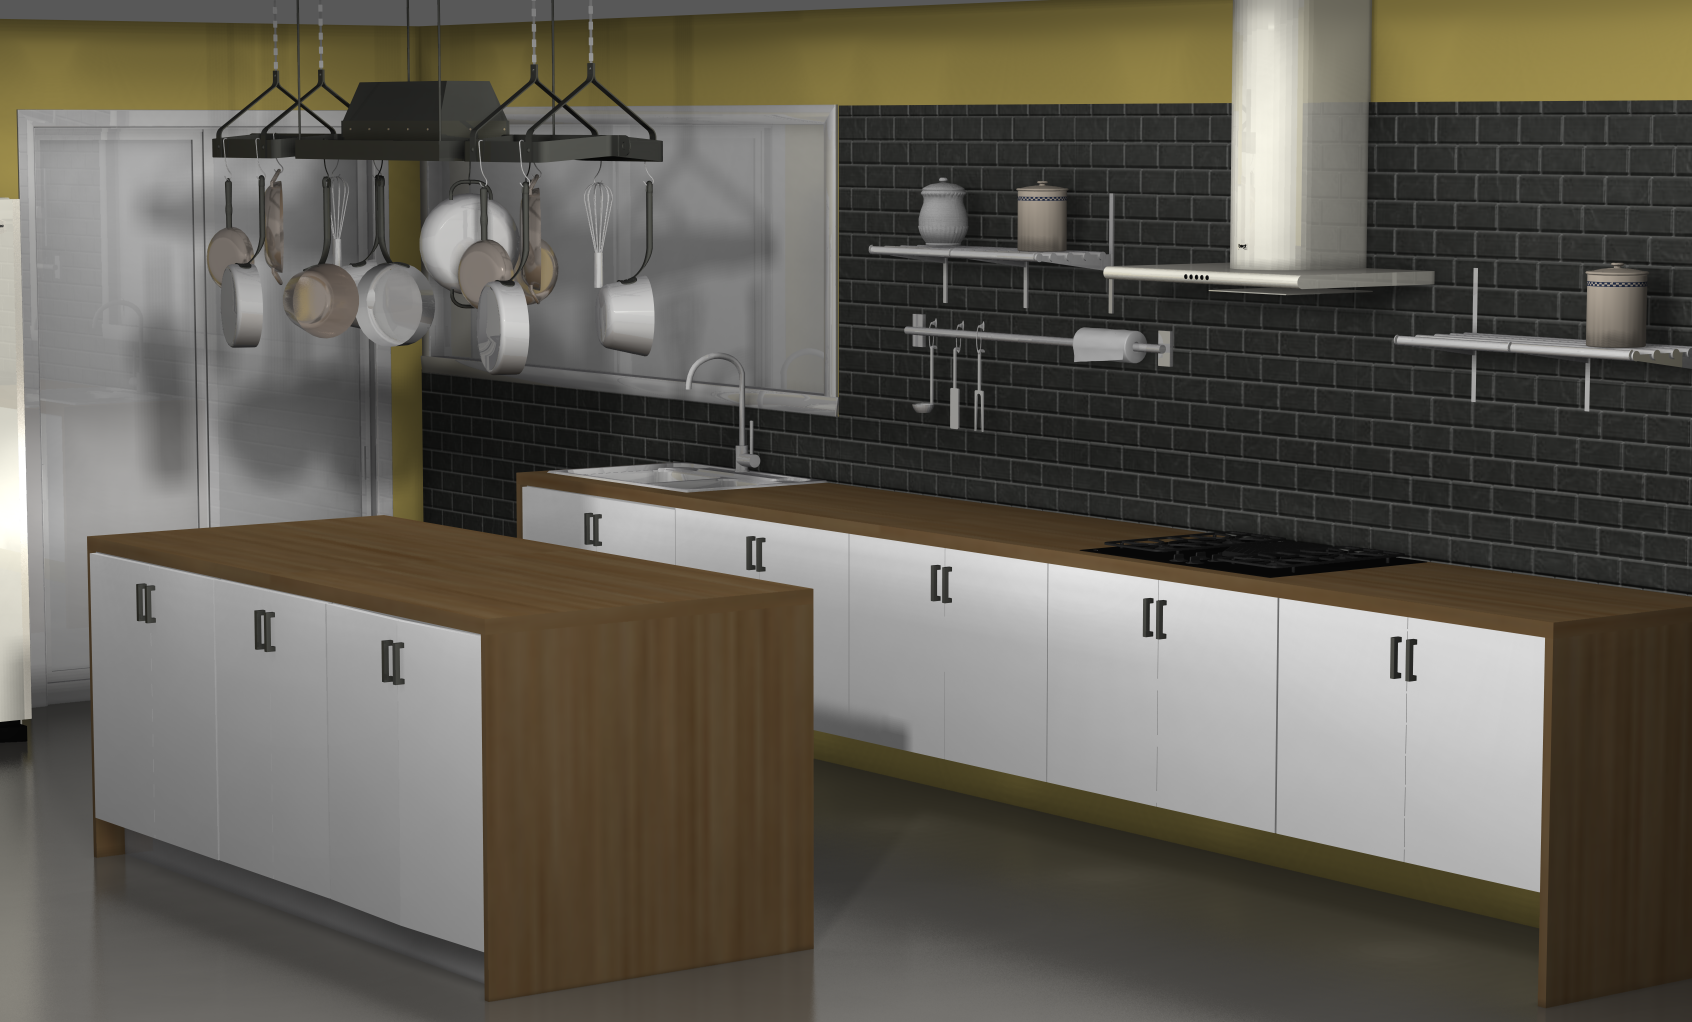 Kitchen design ideas an ikea kitchen with fewer wall cabinets for Kitchen wall cupboards